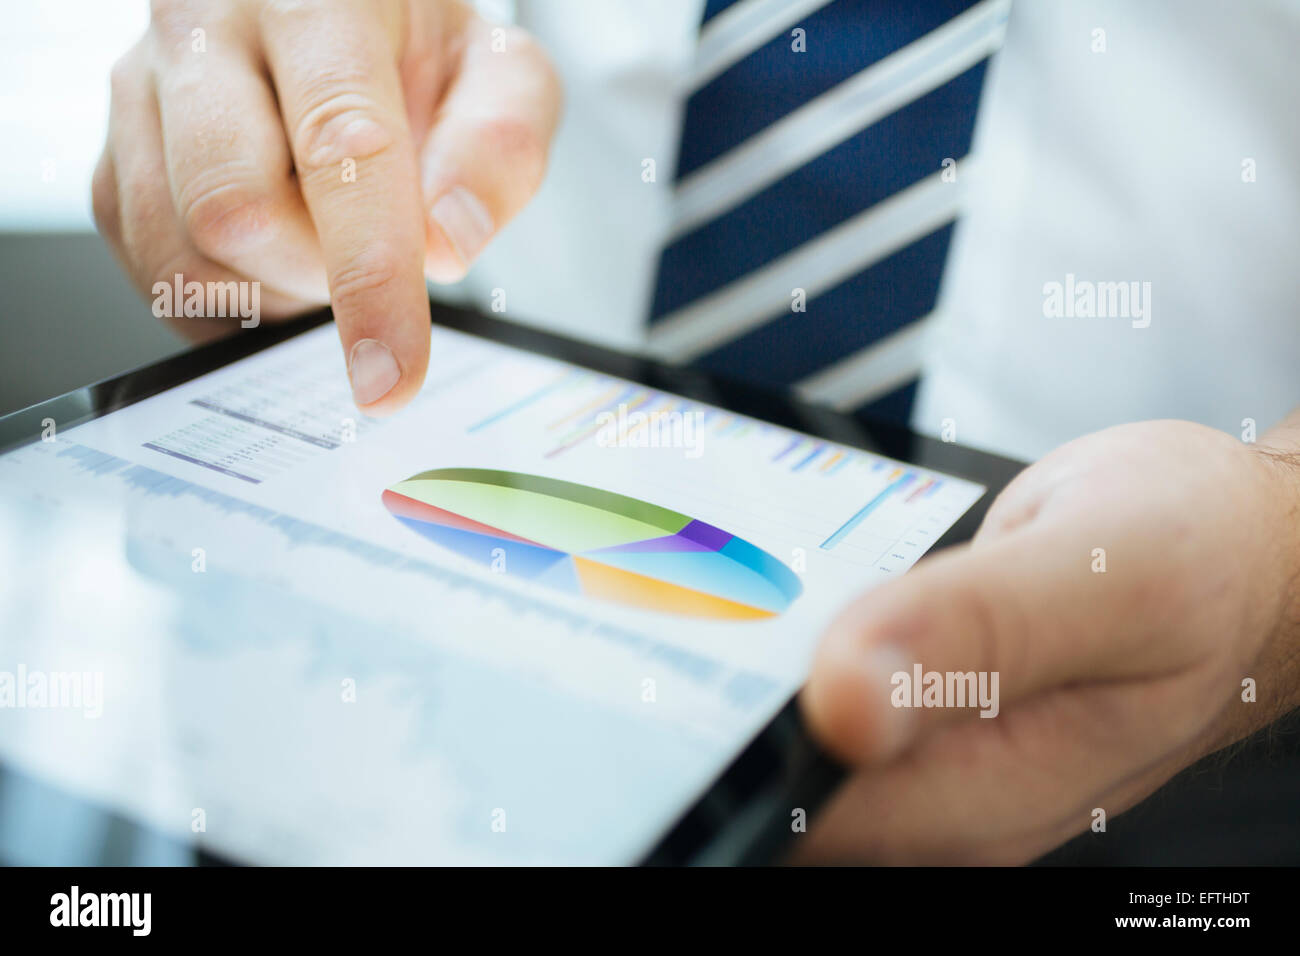 Digital tablet - Stock Image